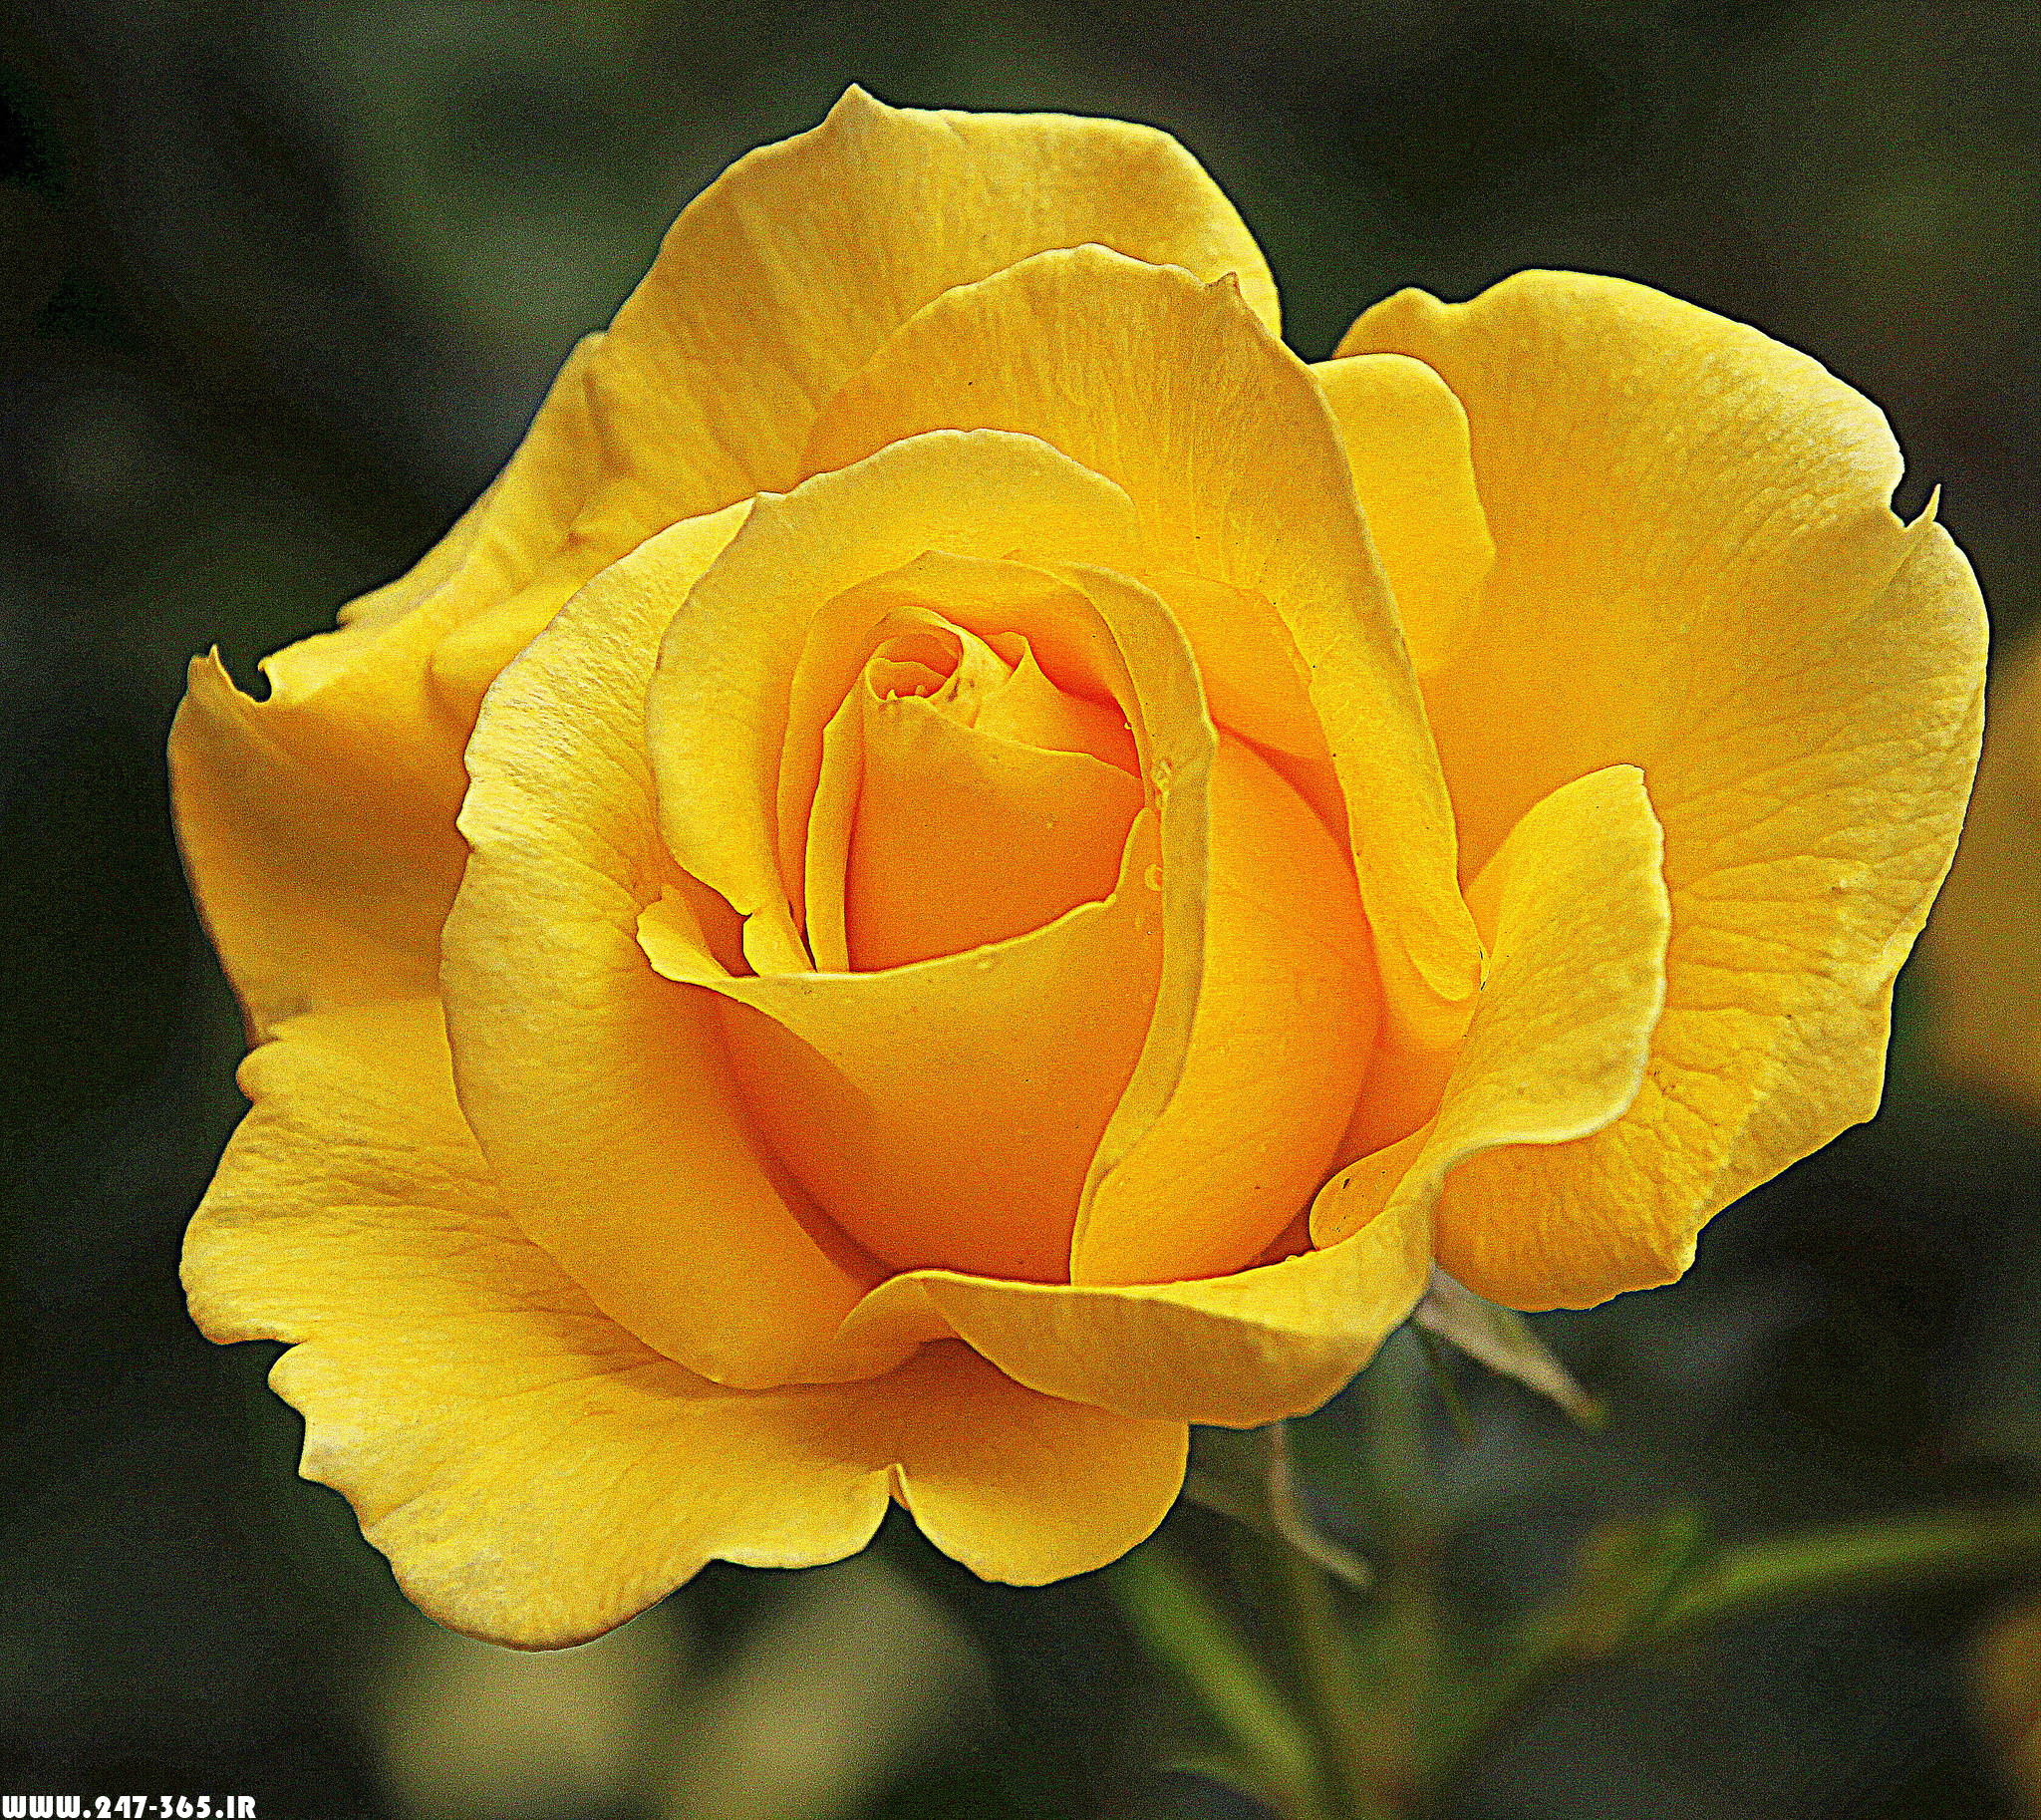 http://dl.247-365.ir/pic/gol/yellow_rose_2/Yellow_Rose_2_19.jpg